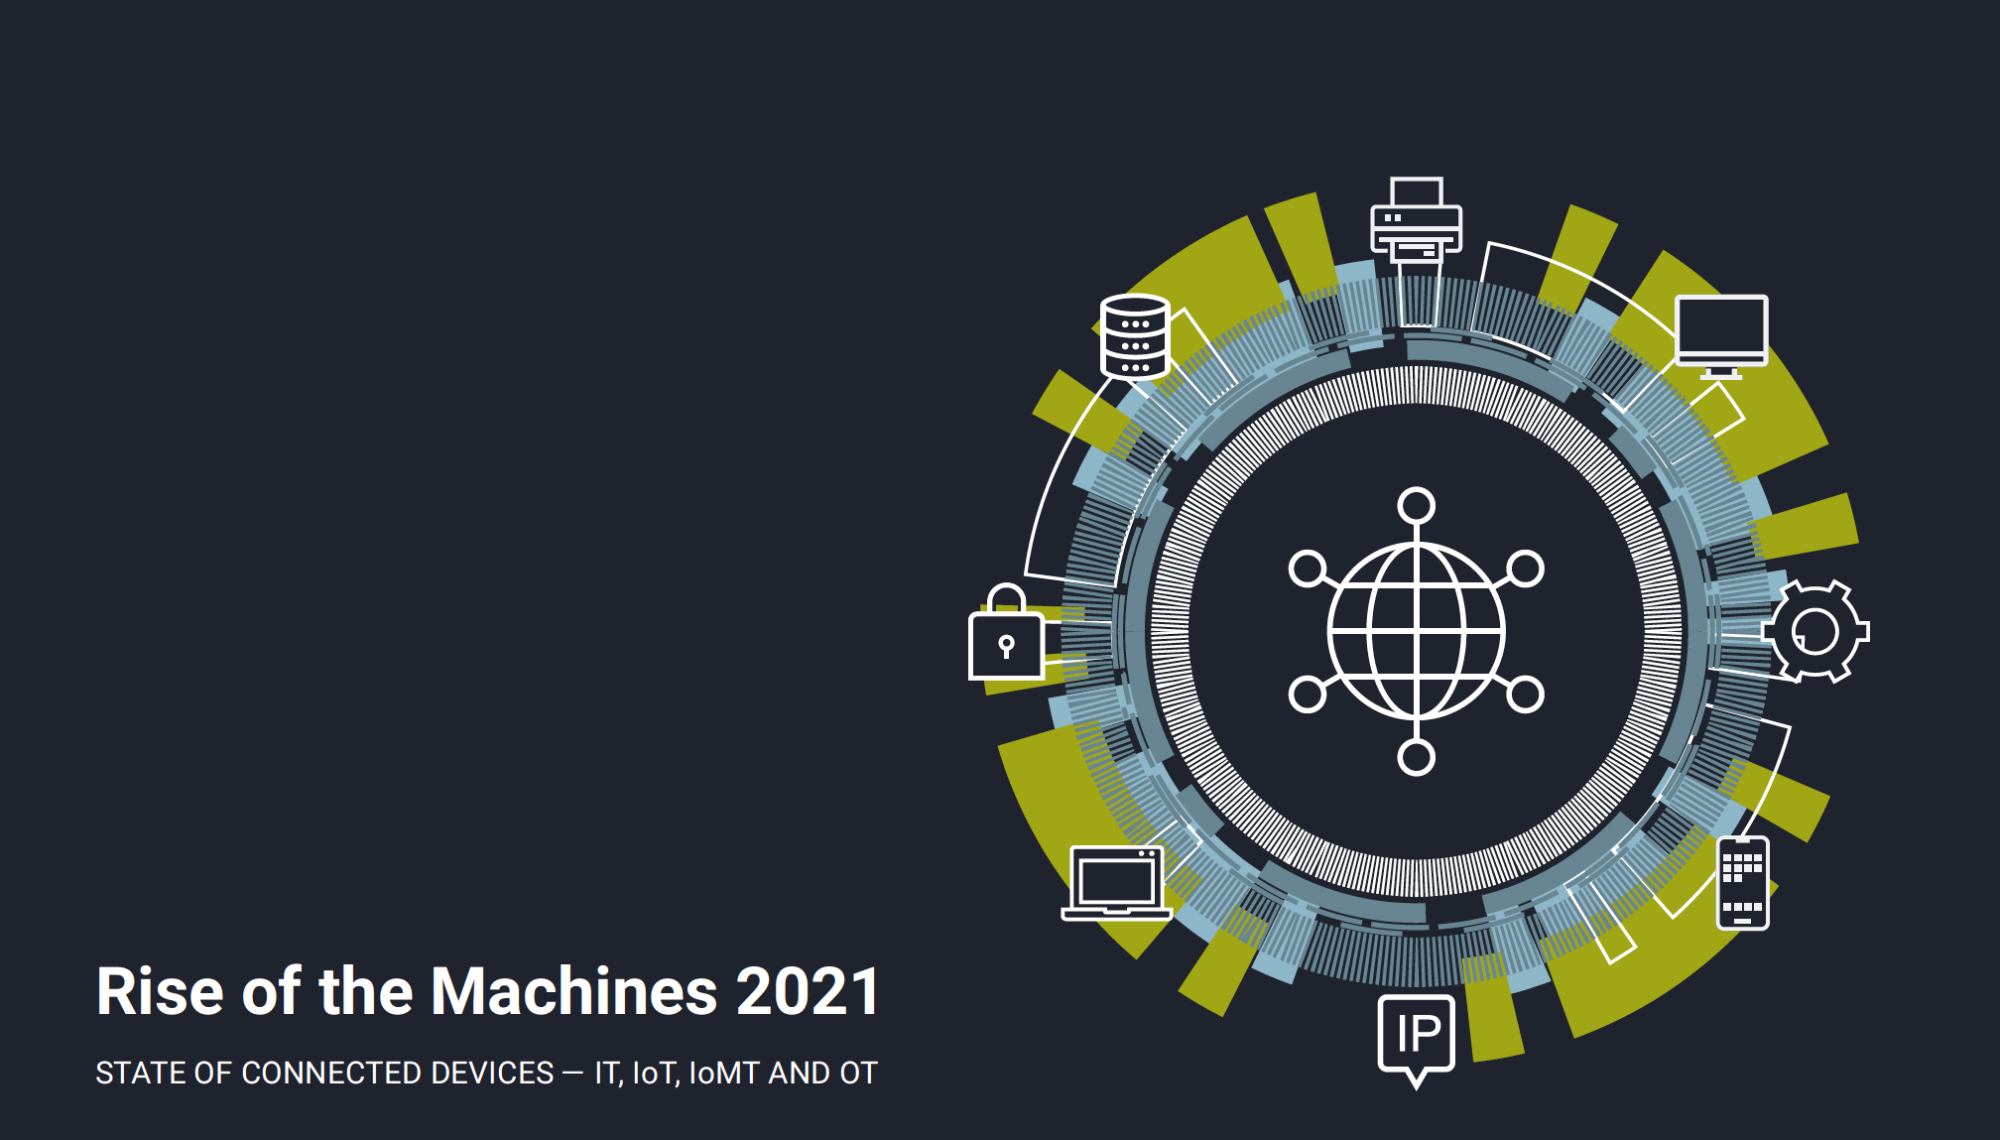 Ordr Releases 2021 Rise of Machines Report